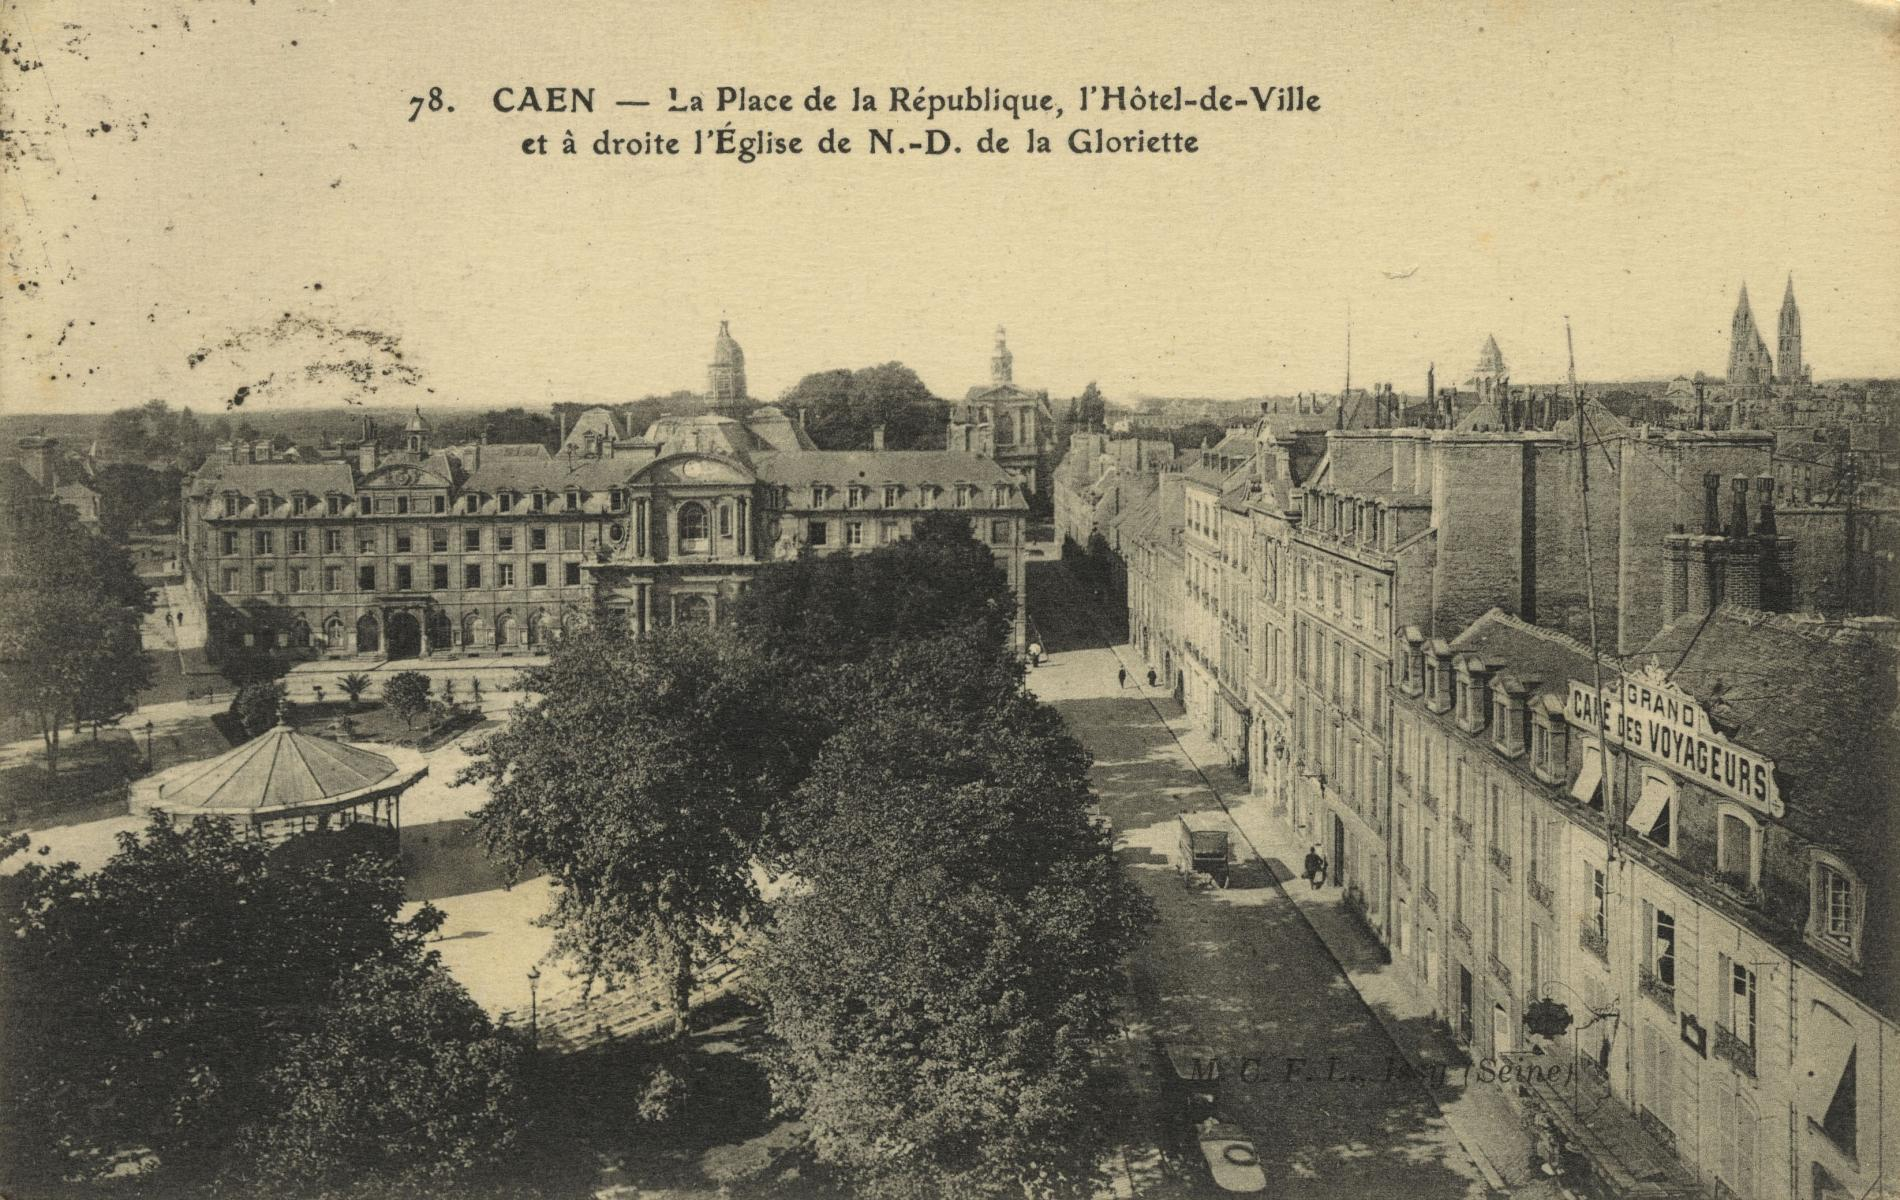 LA PLACE DE LA REPUBLIQUE